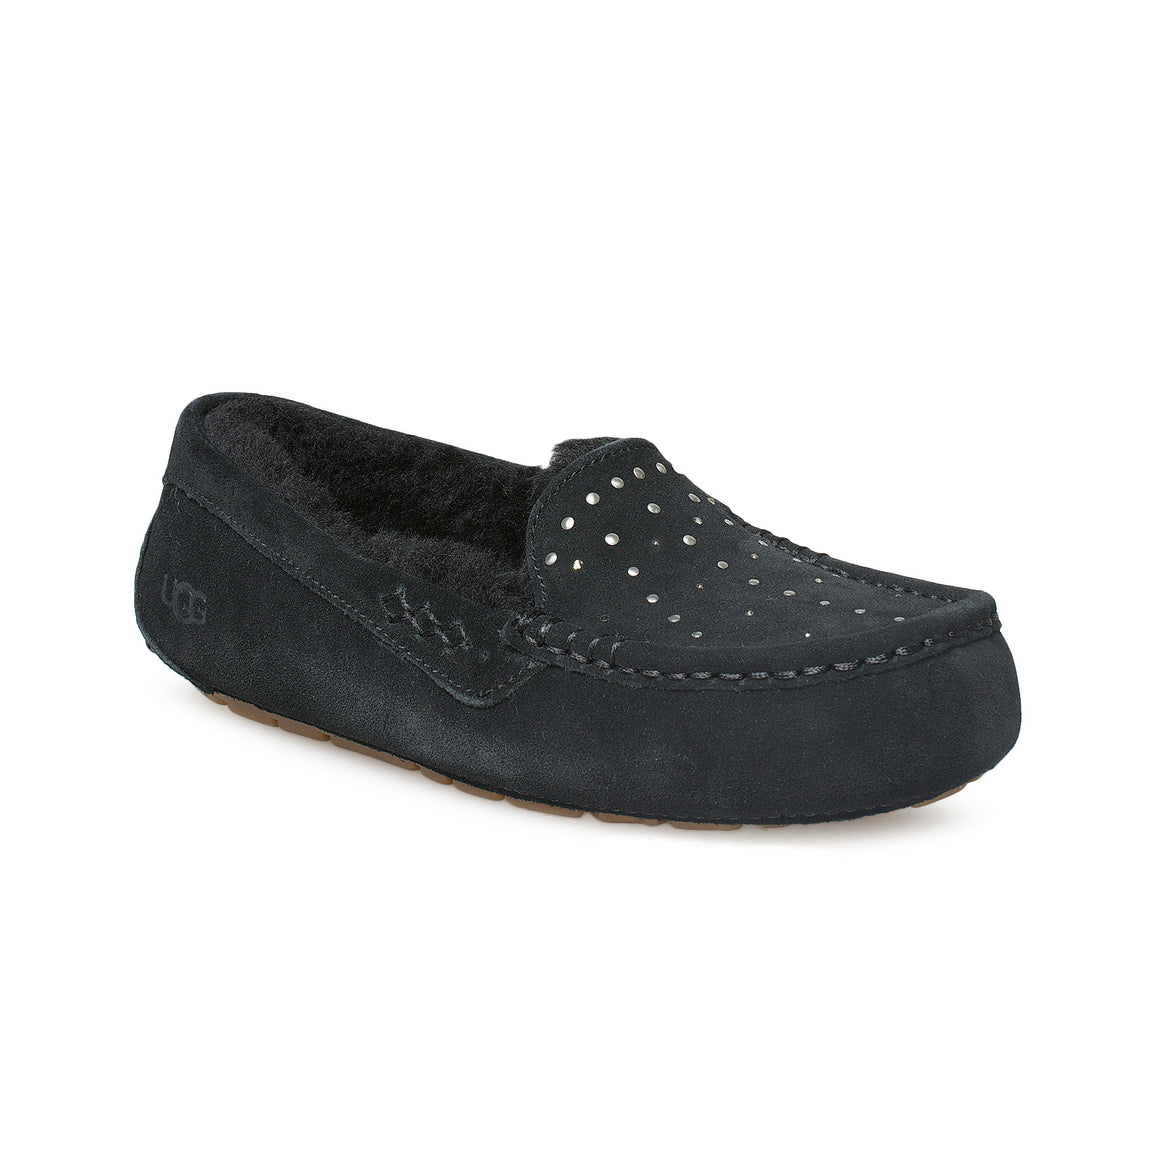 UGG Ansley Studded Black Slippers - Women's